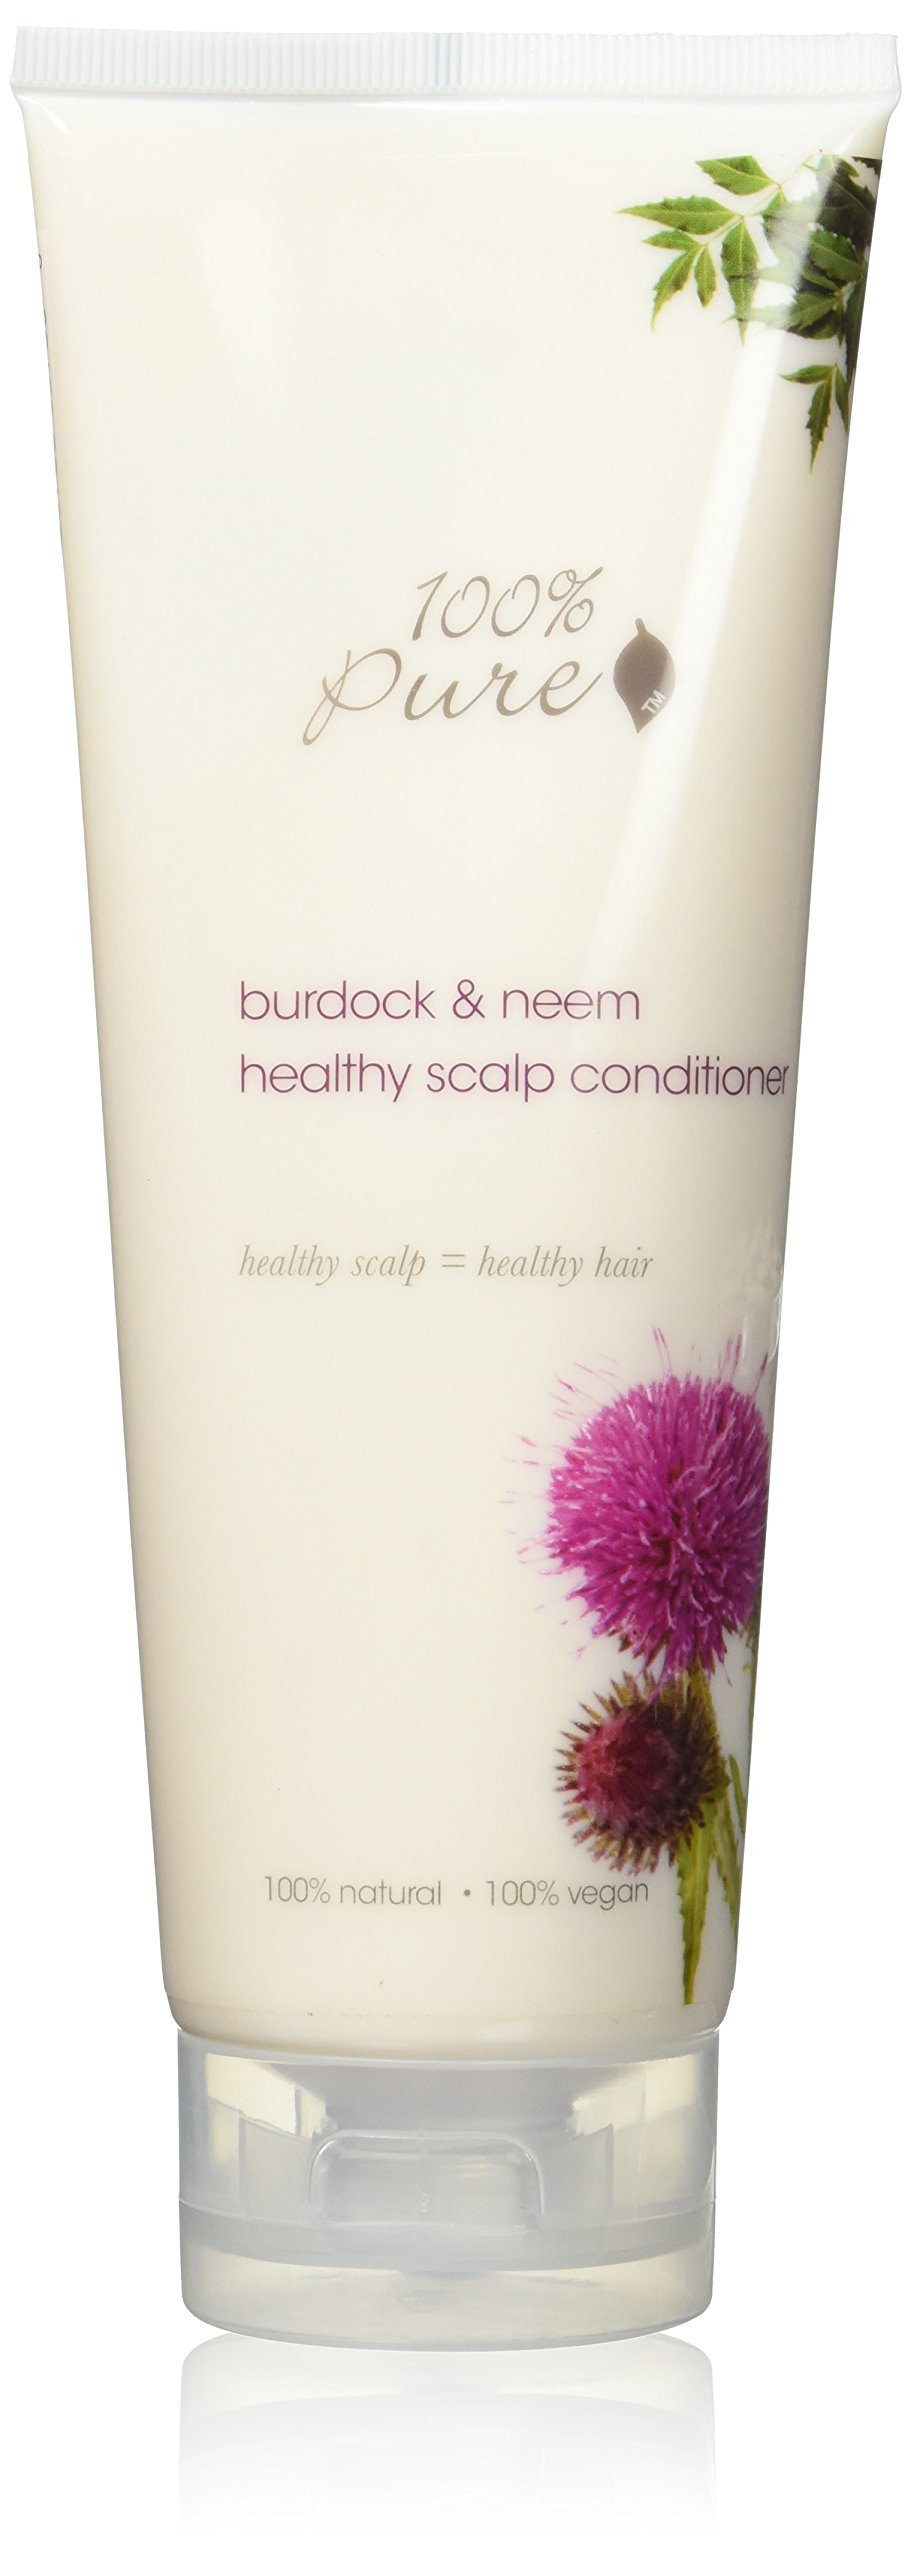 Conditioner Burdock & Neem By 100% Pure 8 oz.